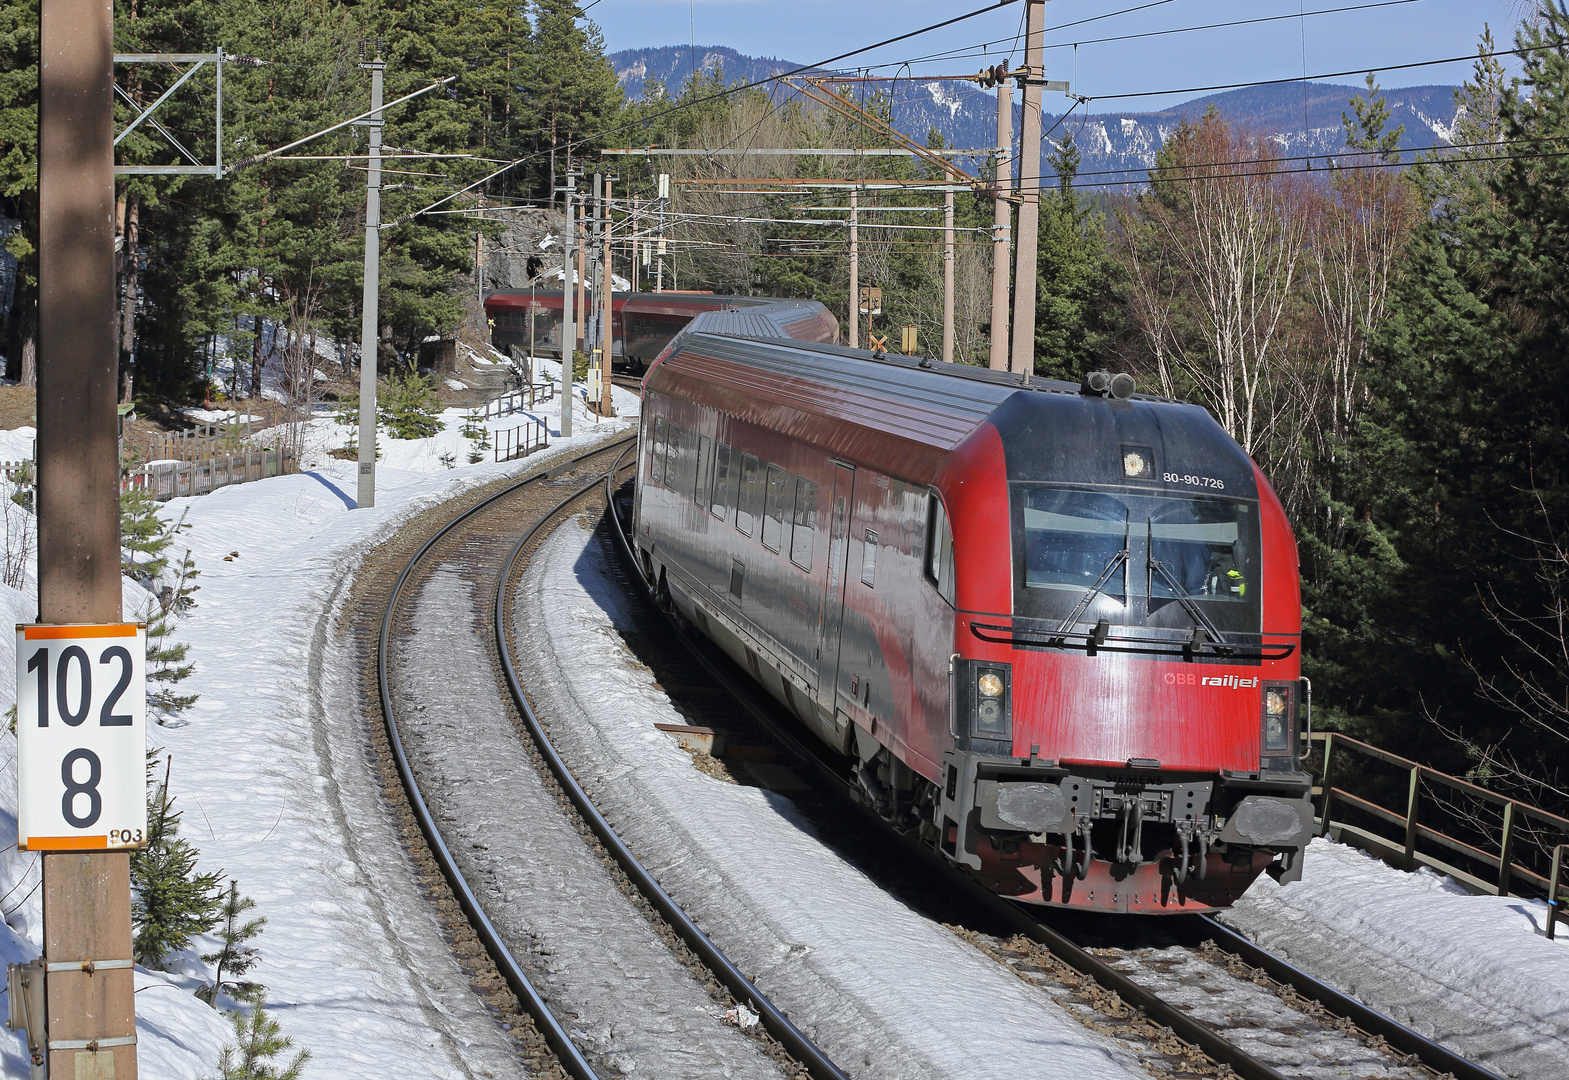 'railjet am Semmering'